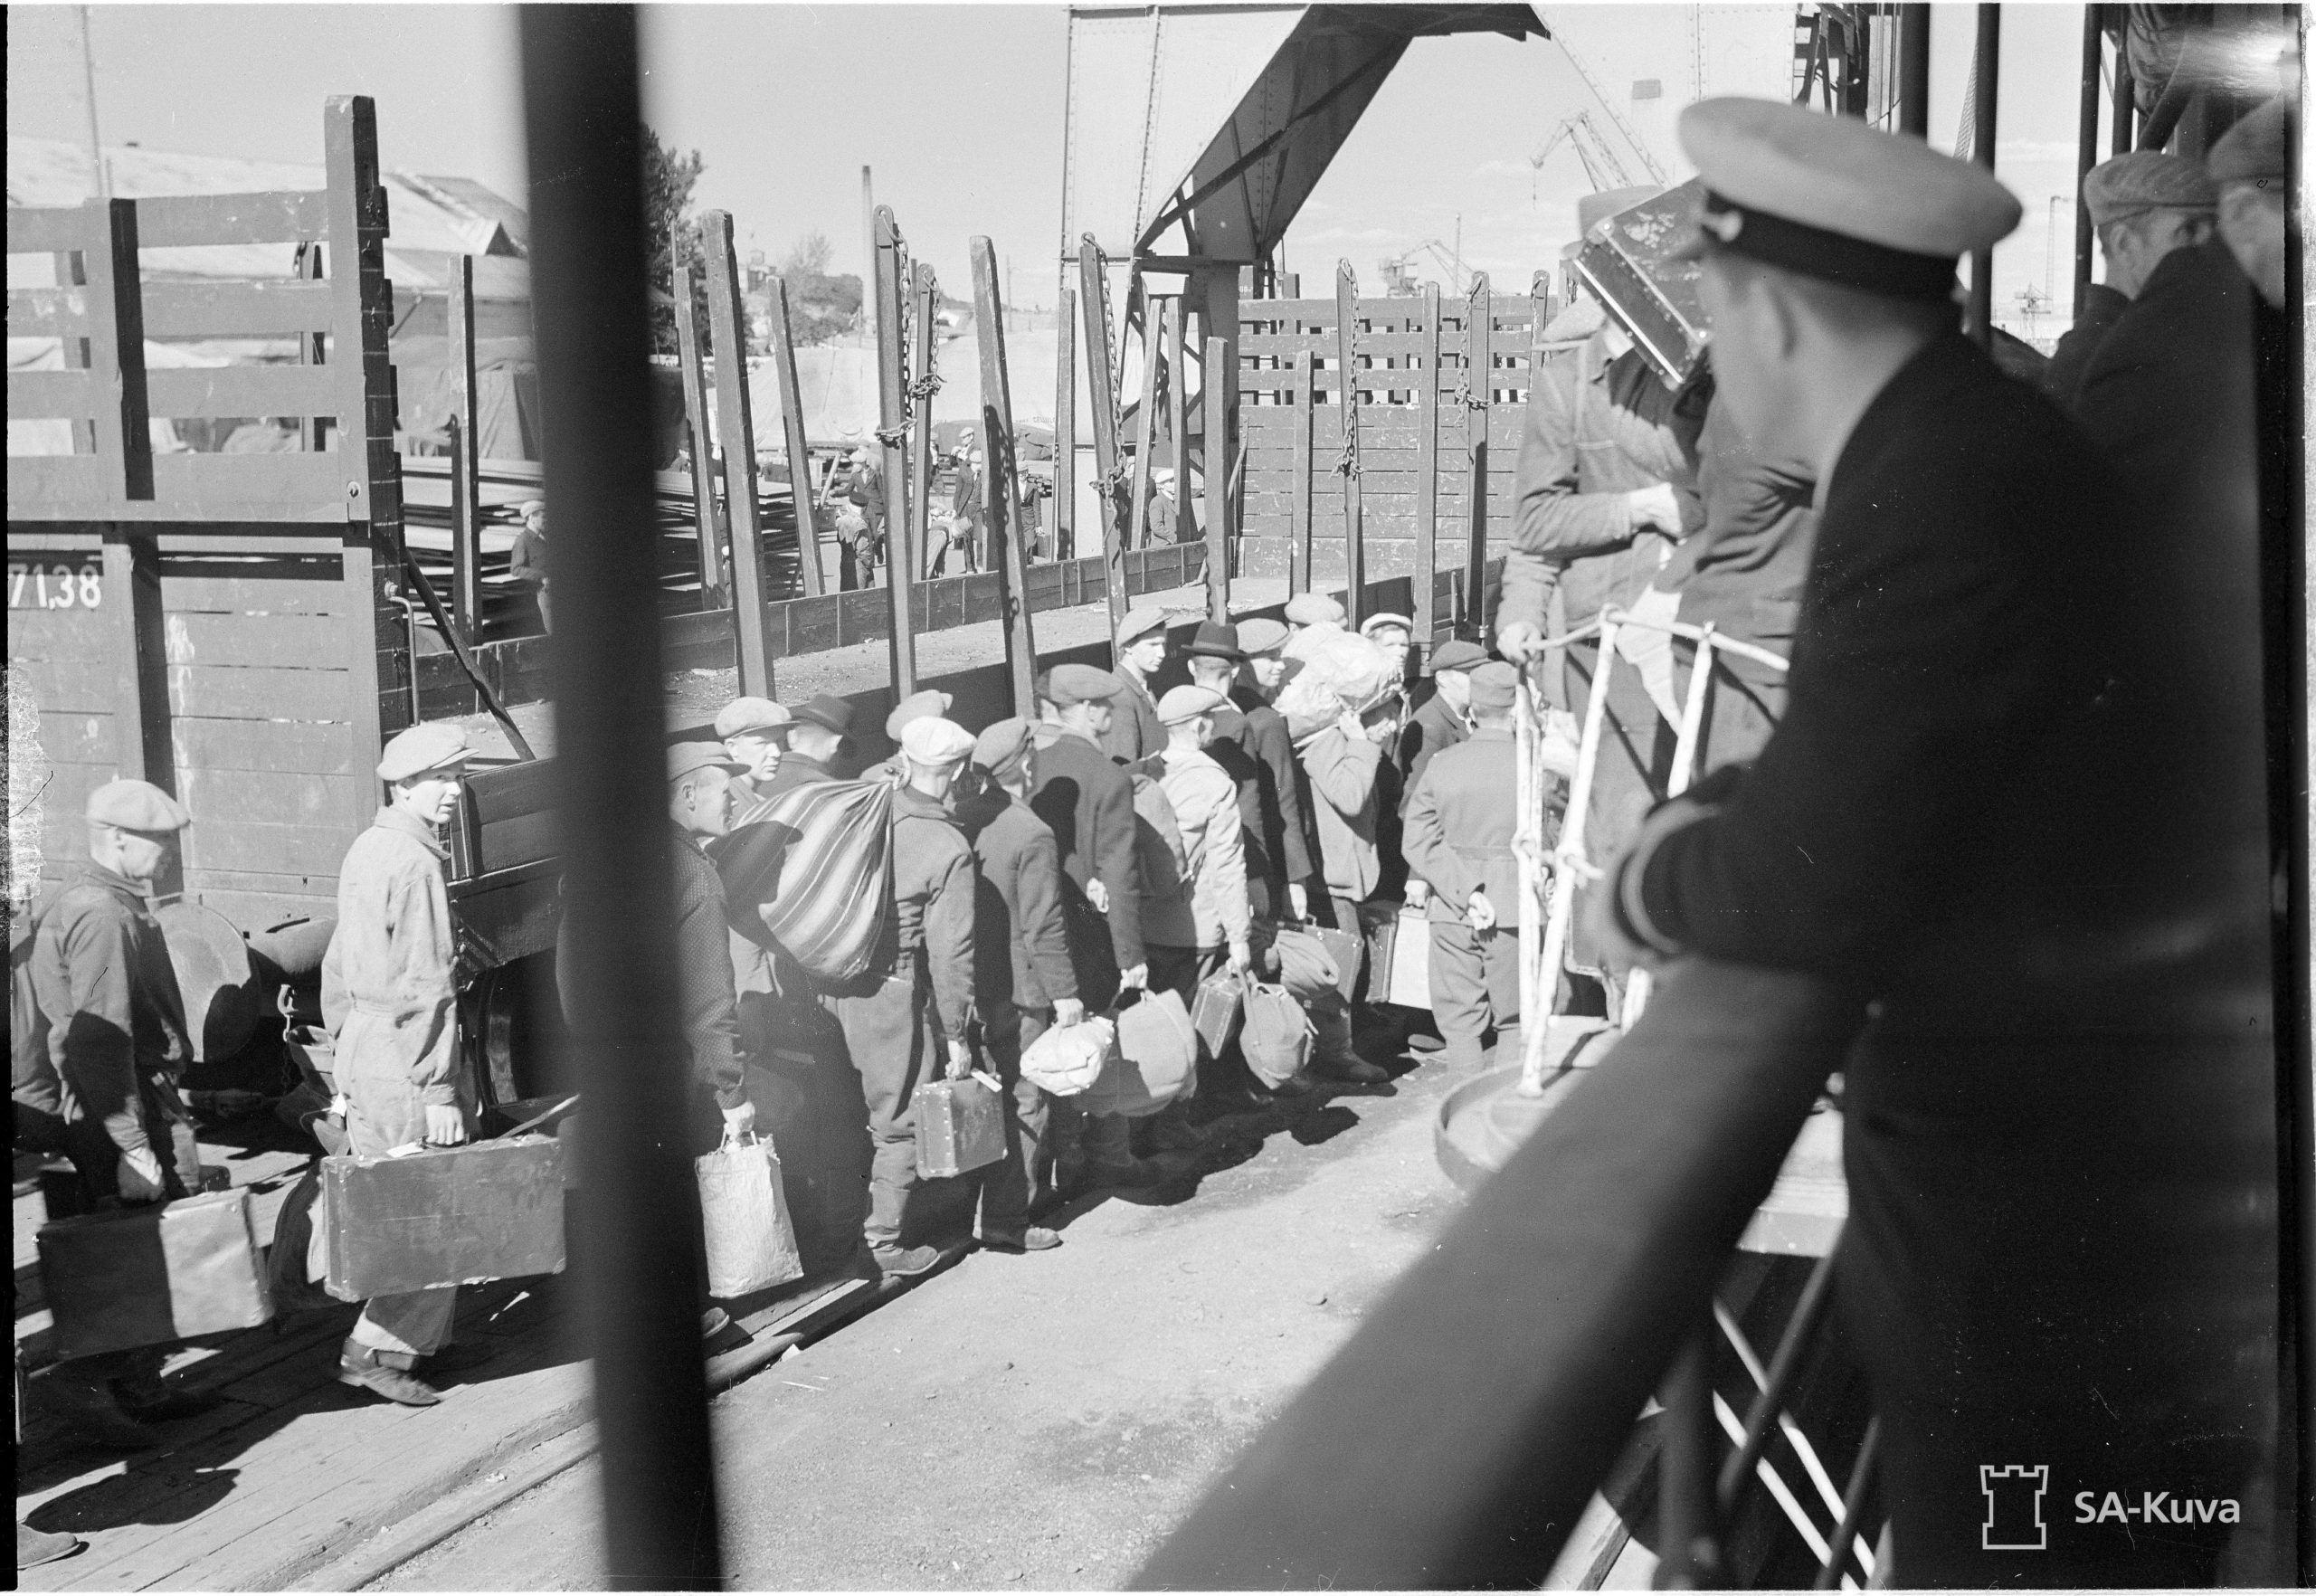 Men on their way to Åland to participate in fortfification work 24.6.1941. Photo: Gunnari. SA-kuva